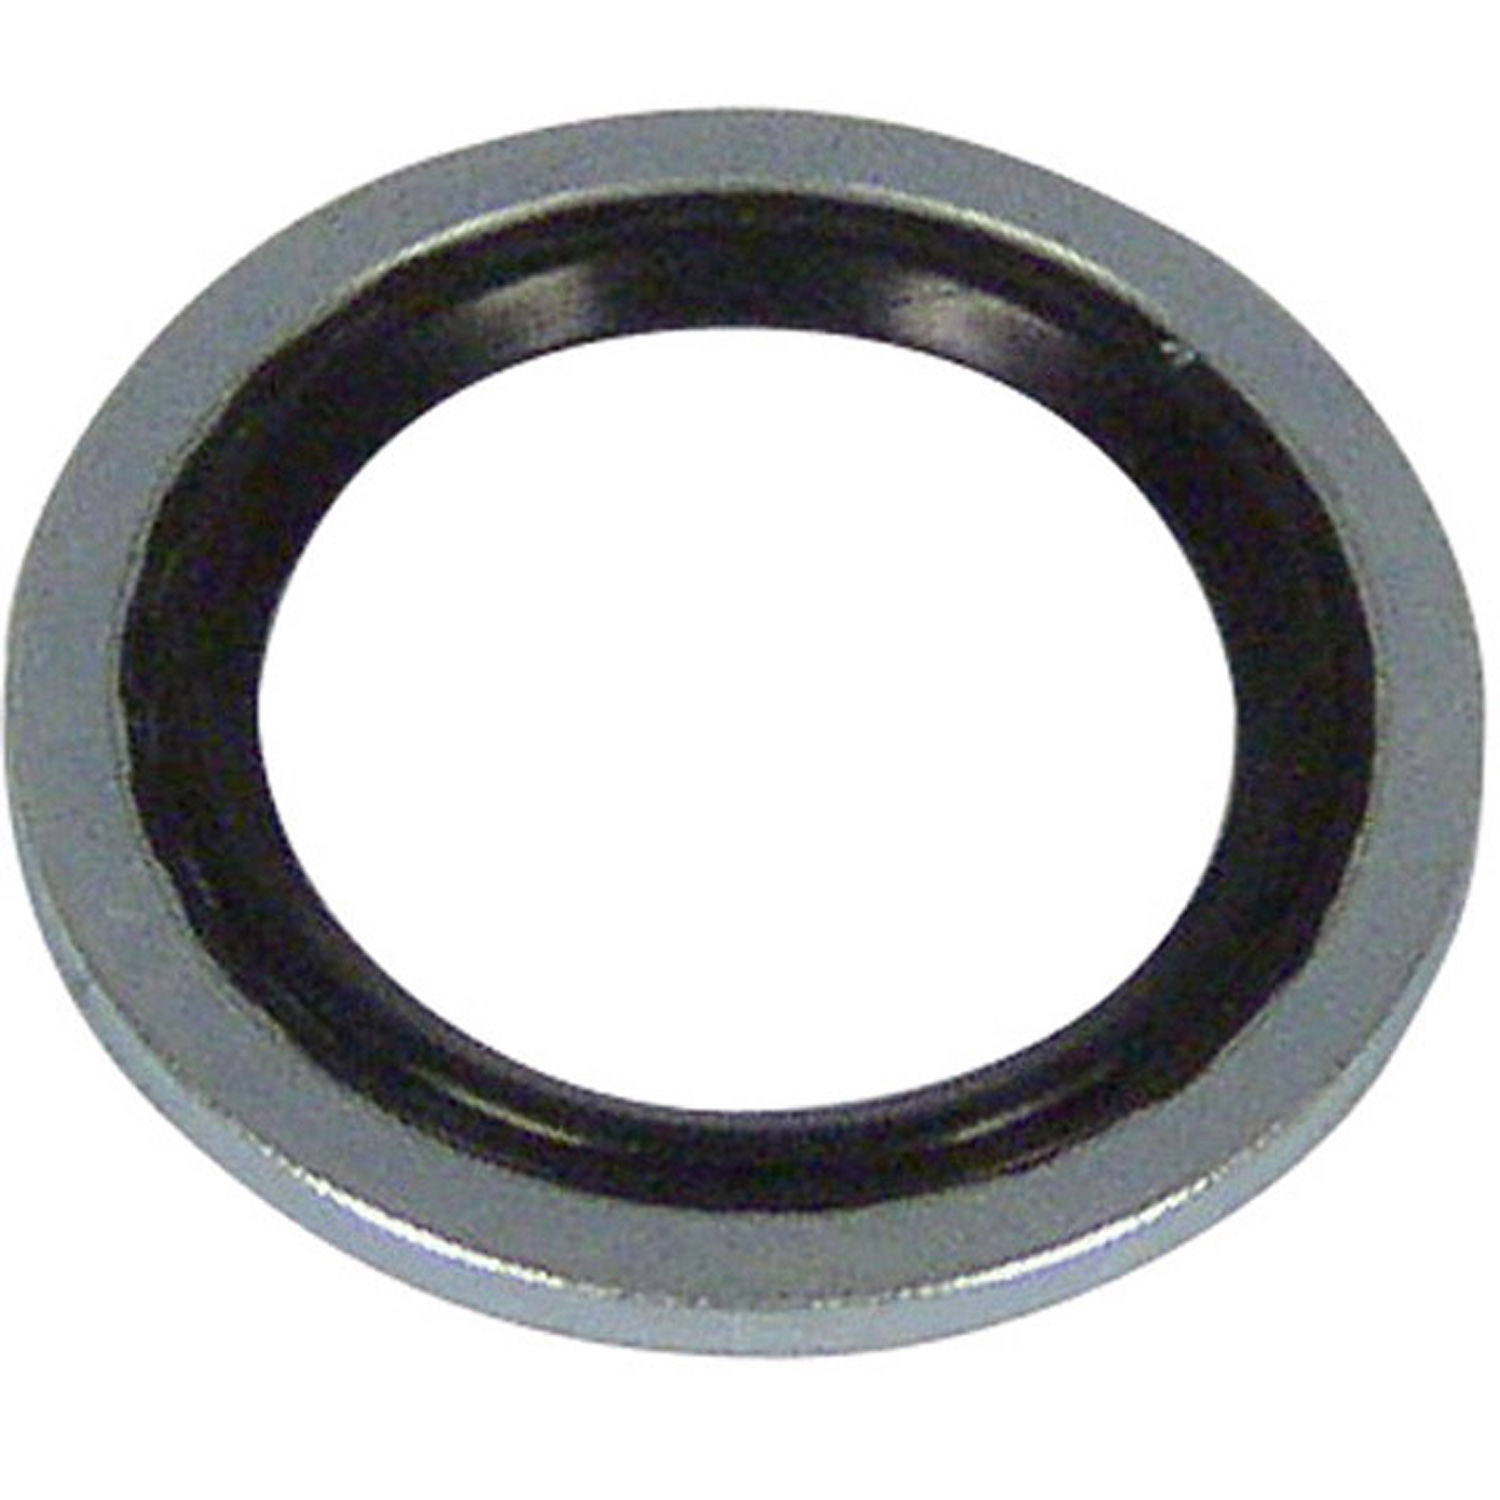 Thin Line Sealing Washer for Late Model GM Fittings  #10-15mm I.D.